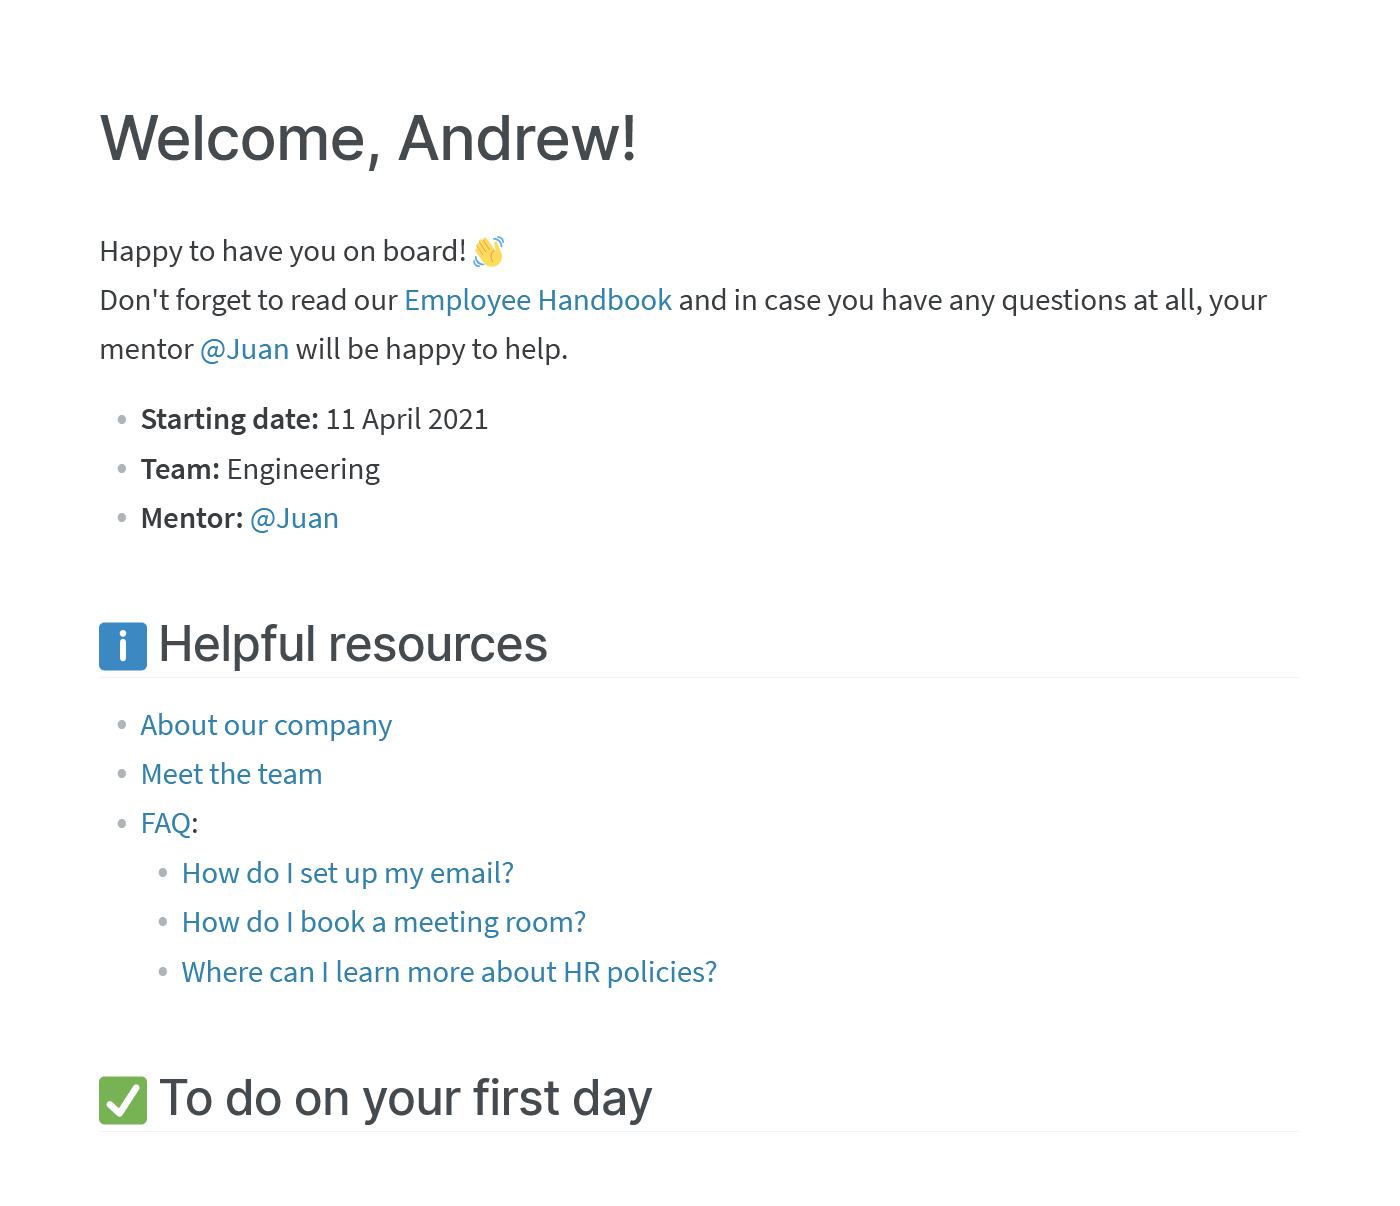 Onboarding checklist and welcome page for new hires